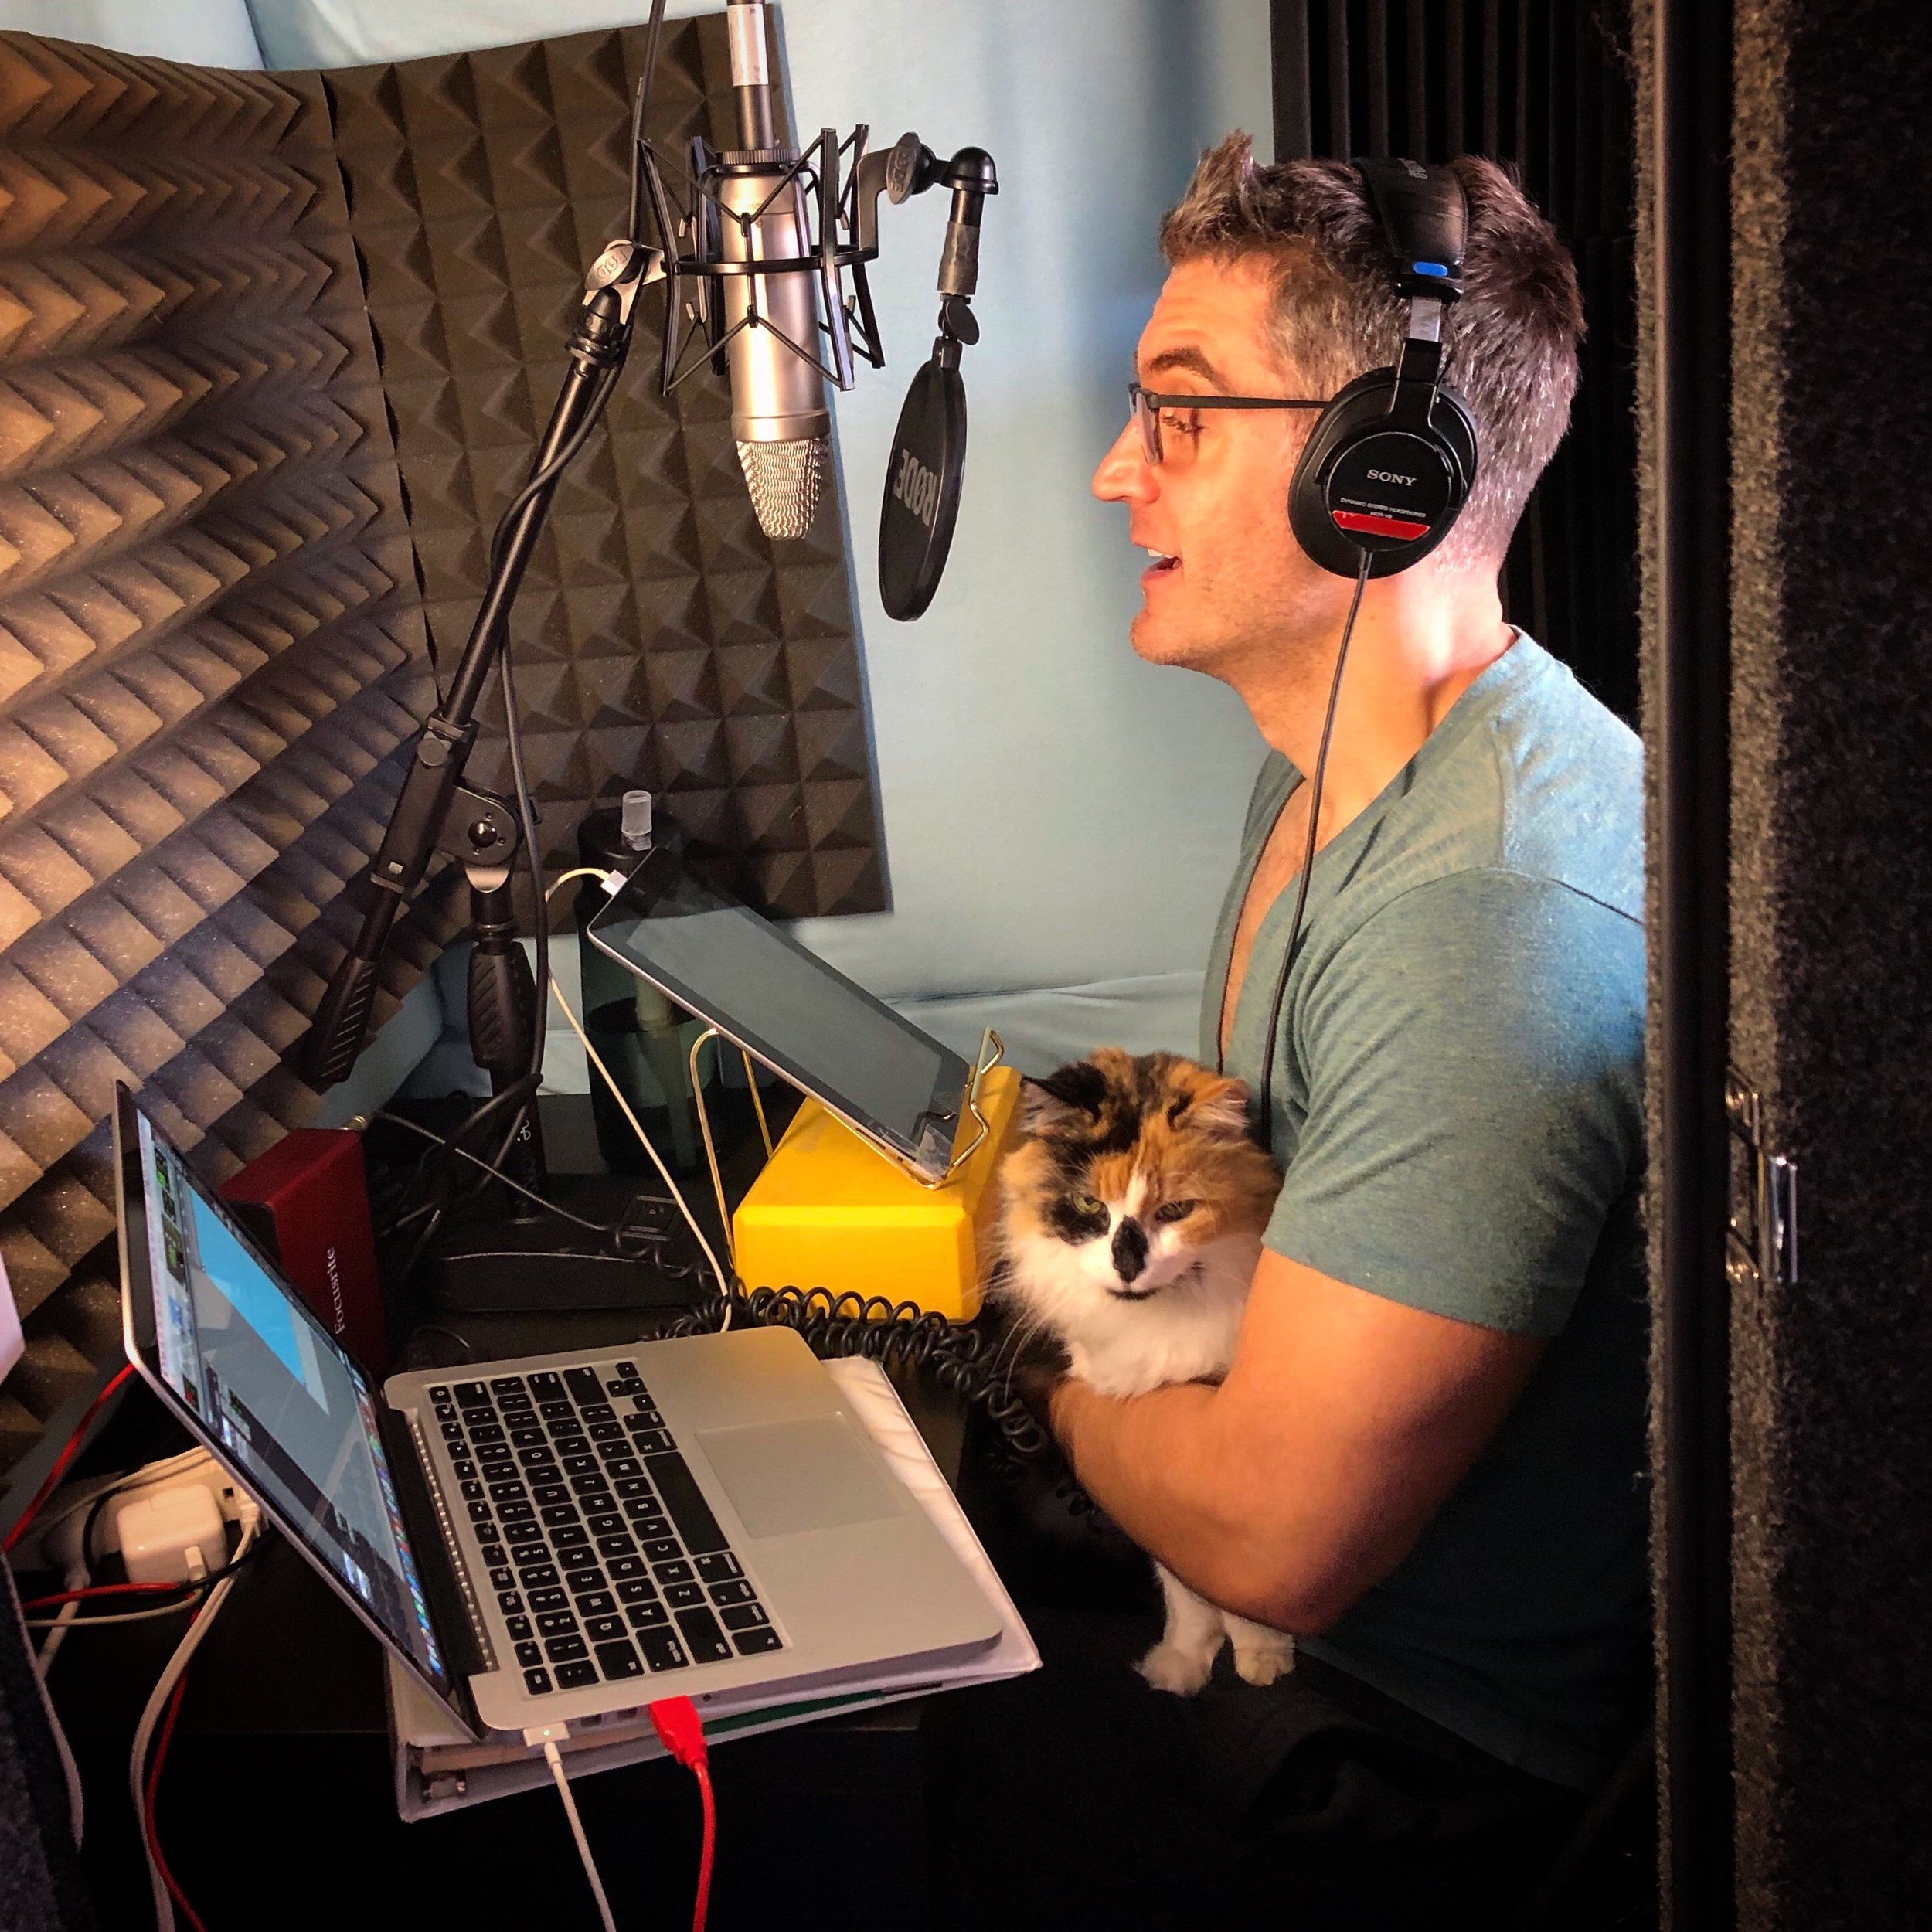 Cat not included in final recording